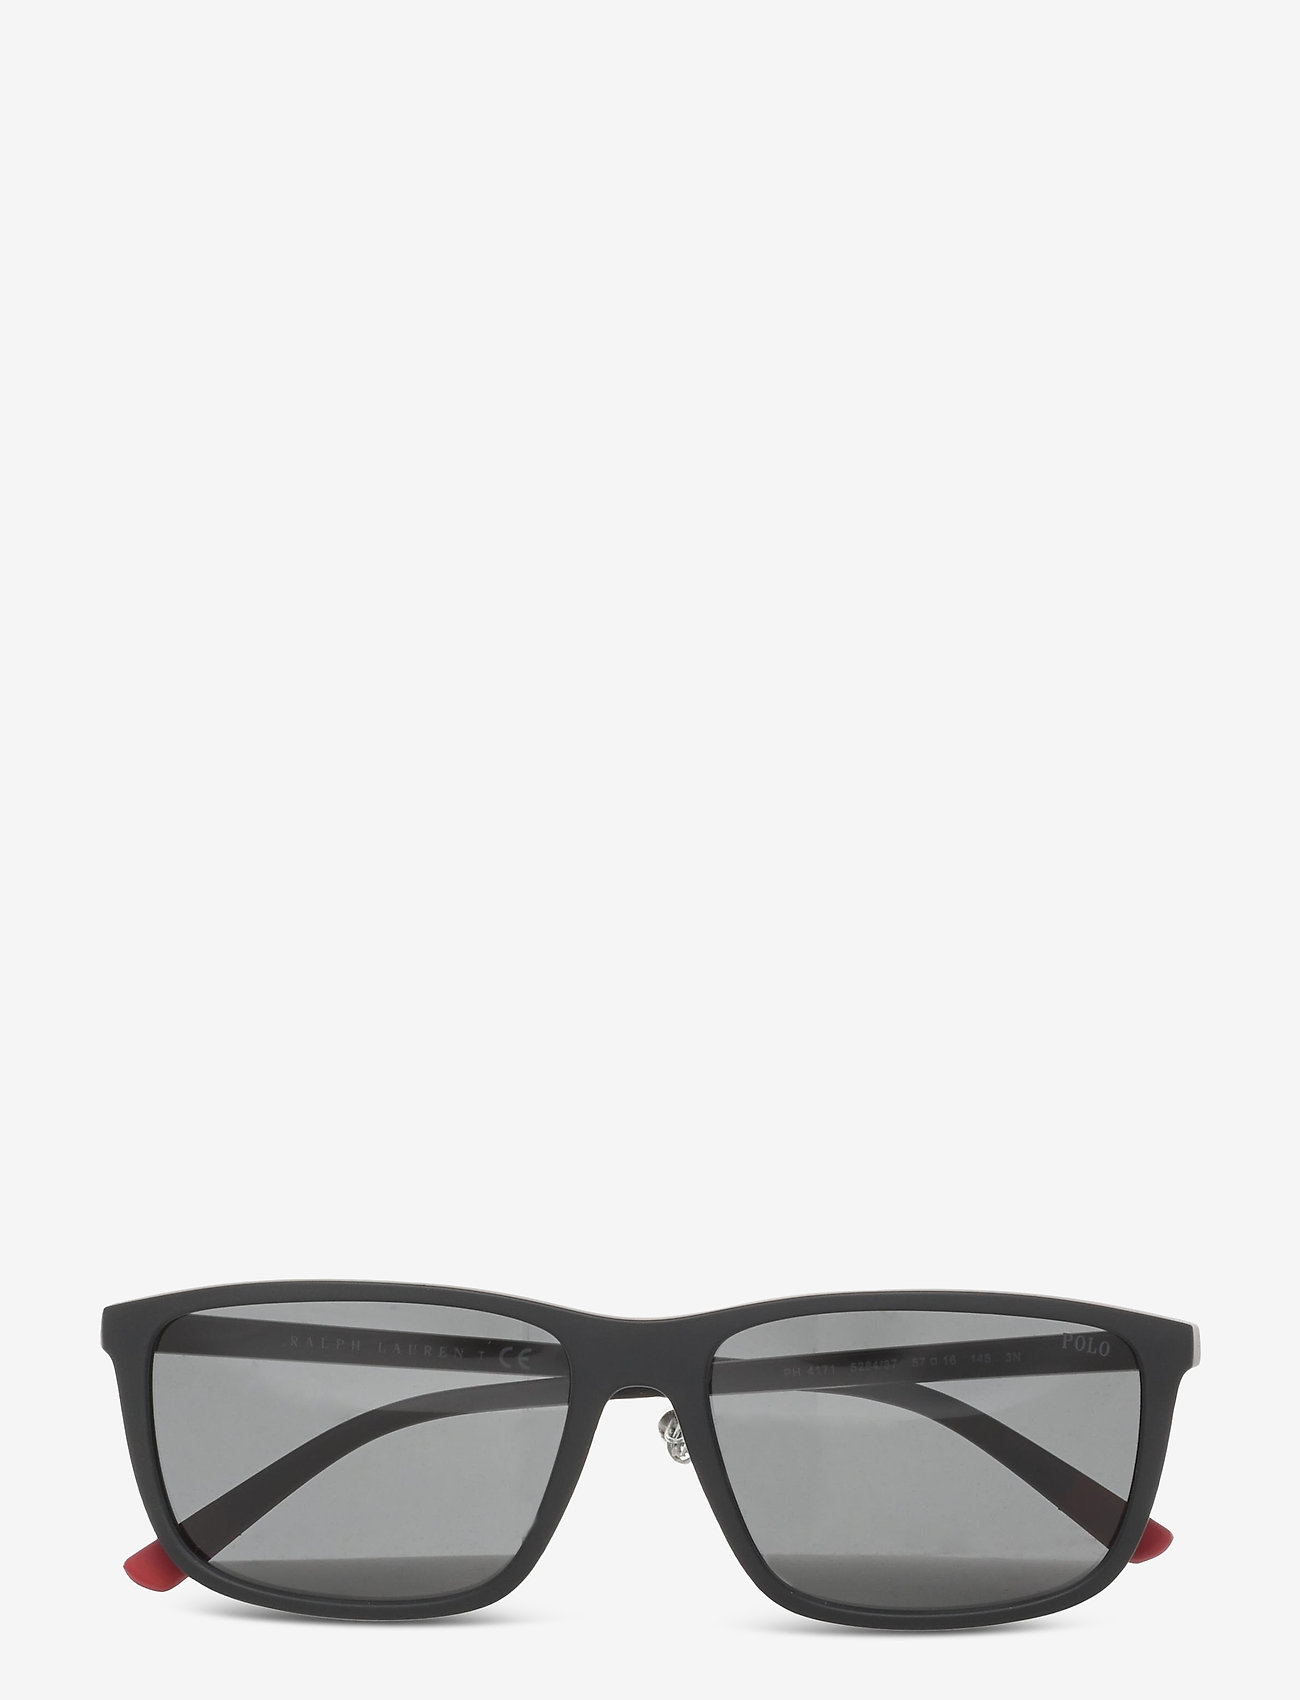 Polo Ralph Lauren - Sunglasses - d-shaped - dark grey - 0